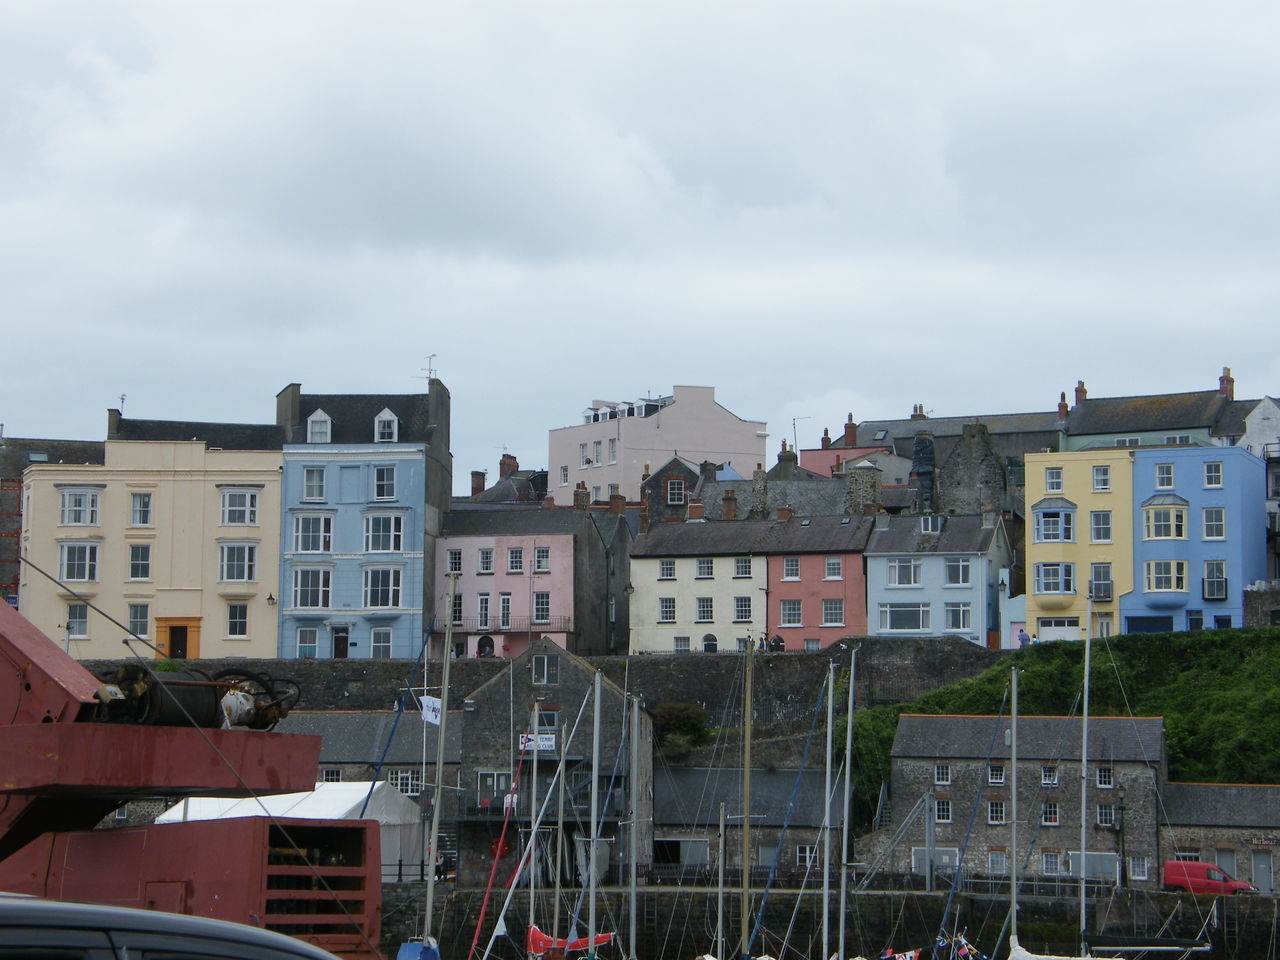 Architecture Building Exterior Built Structure City Coloured Houses Day No People Outdoors Pembrokeshire Pembrokeshire Coast Pembrokeshire Coastal Path Seaside Seaside Town Sky Tenby Tenby Harbour